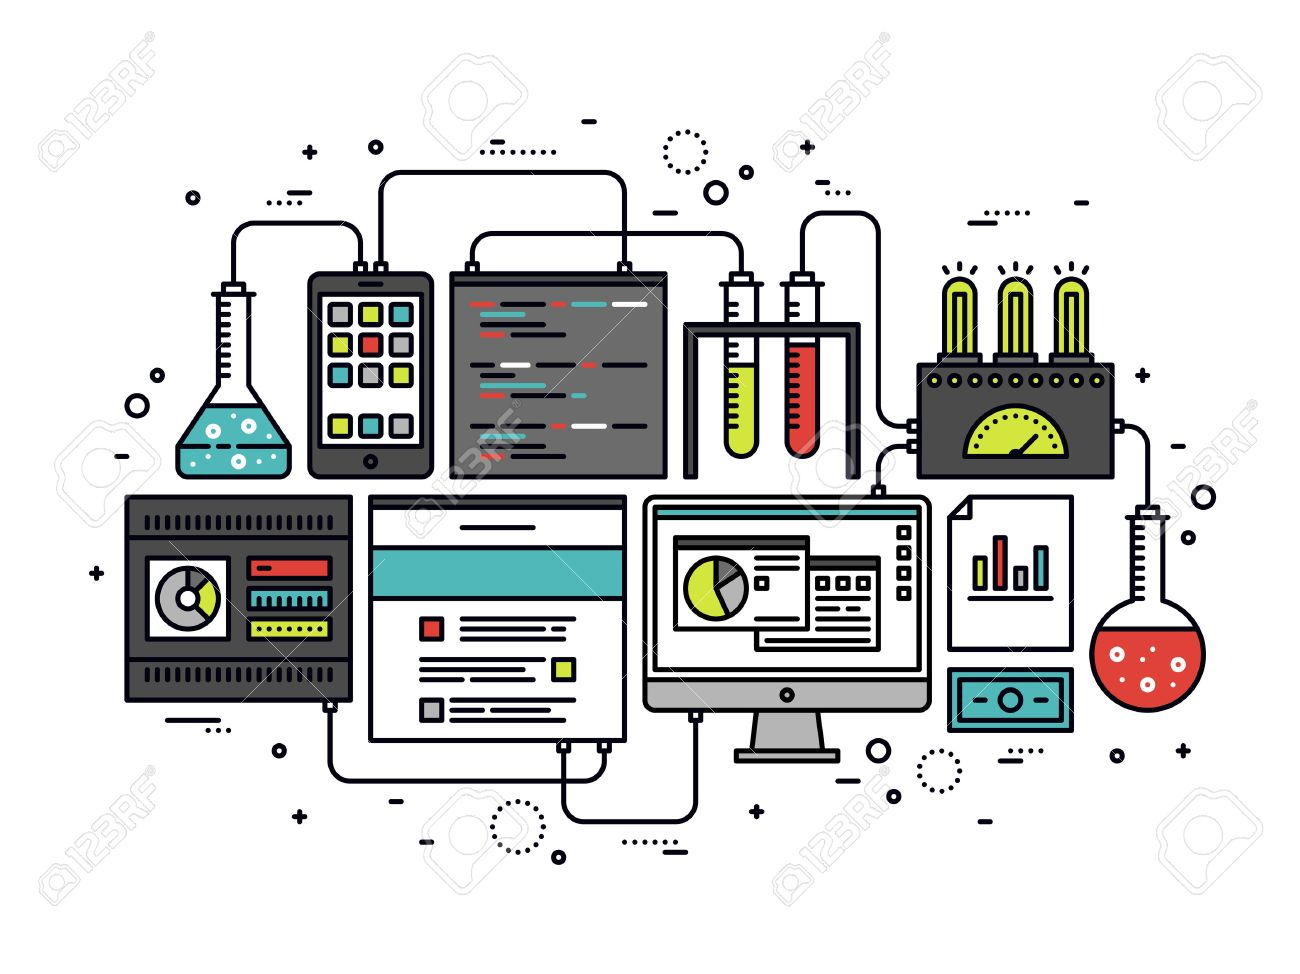 Thin line flat design of internet website content research, web CMS analysis measure, product testing technology, big data analytics. Modern vector illustration concept, isolated on white background. Stock Vector - 44515651